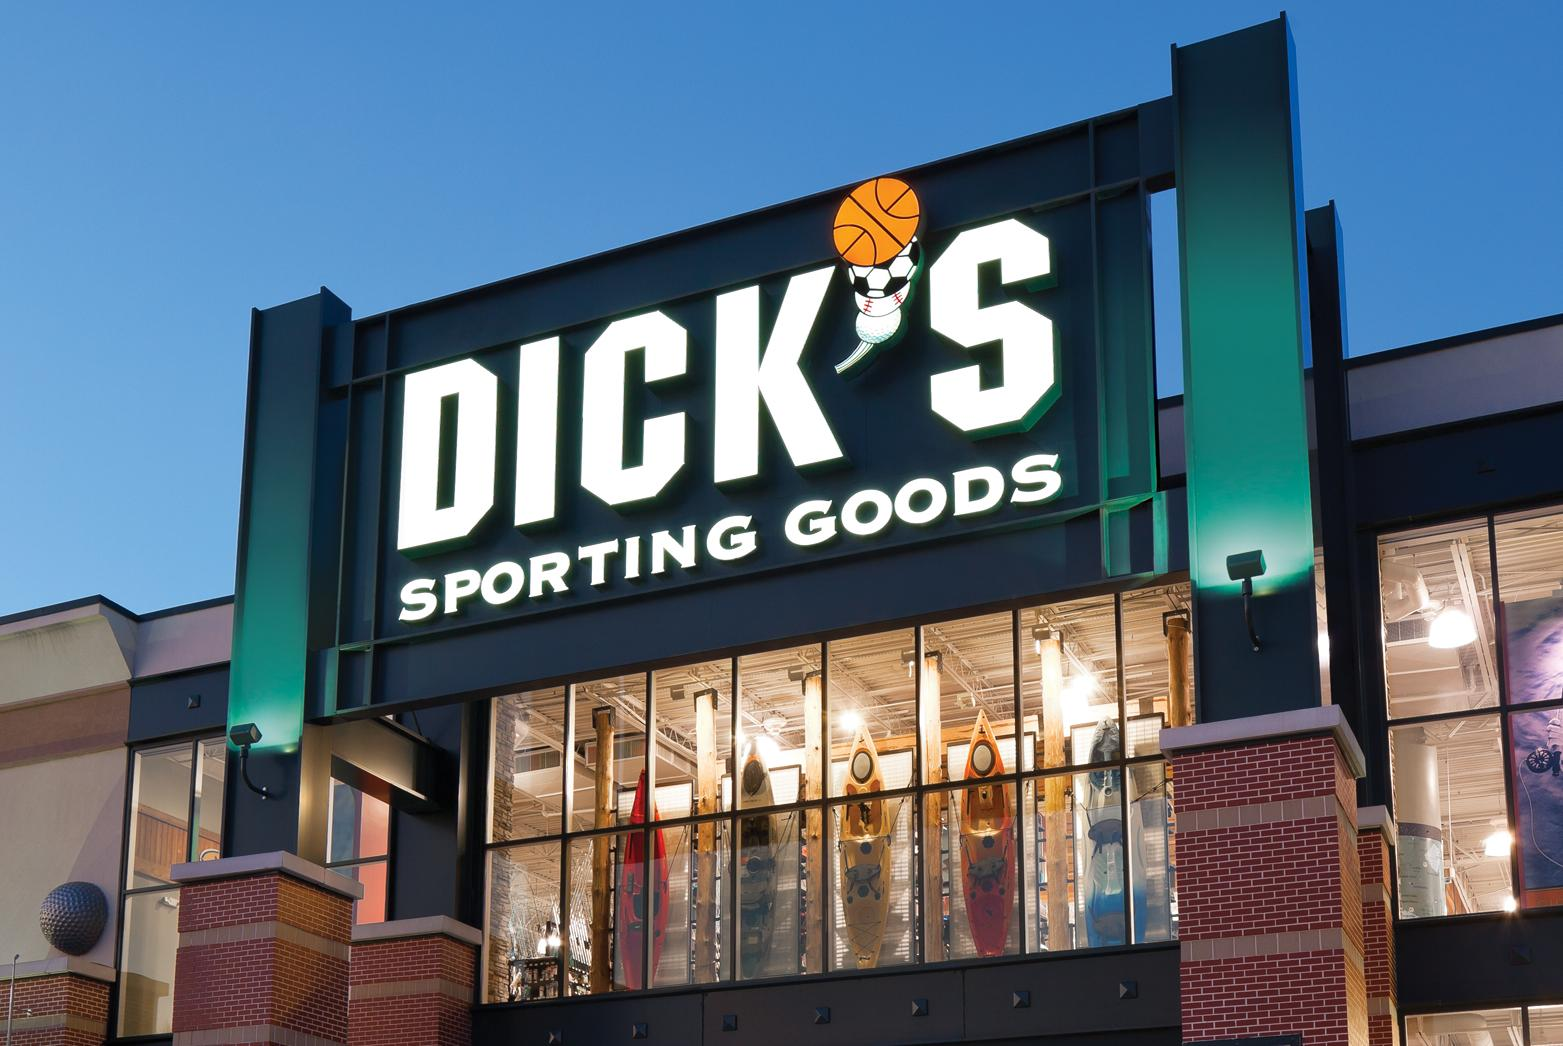 MBA Shop Day at Dick's Sporting Goods